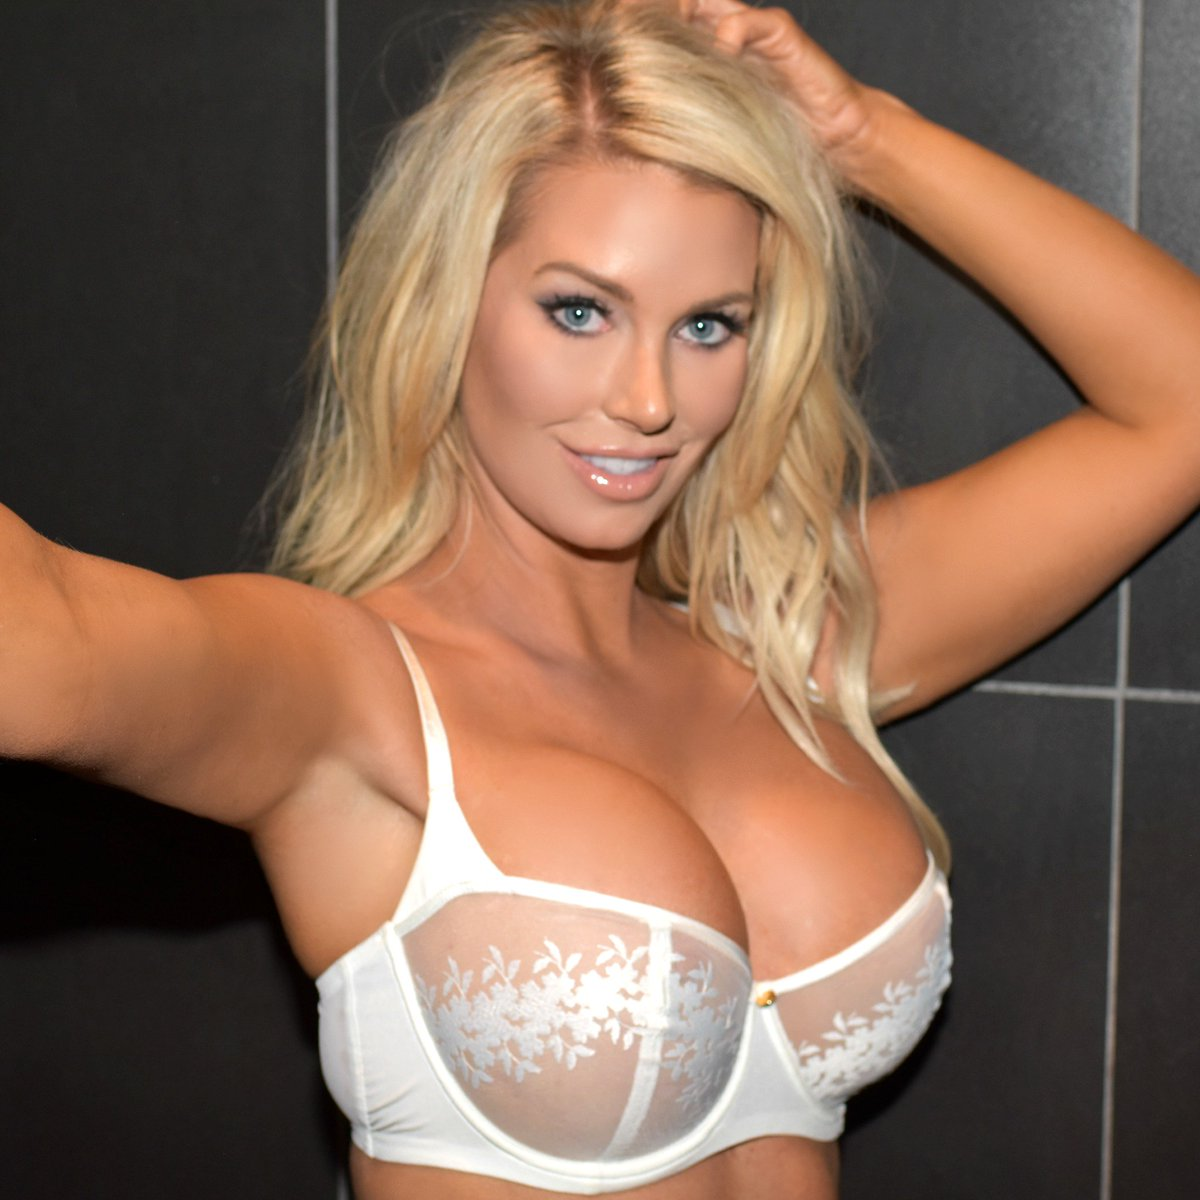 RT @_ElleJohnson: #NationalComingOut of my bra day! Okay, maybe I've got that wrong. Sorry! https://t.co/sb3TSelT0D